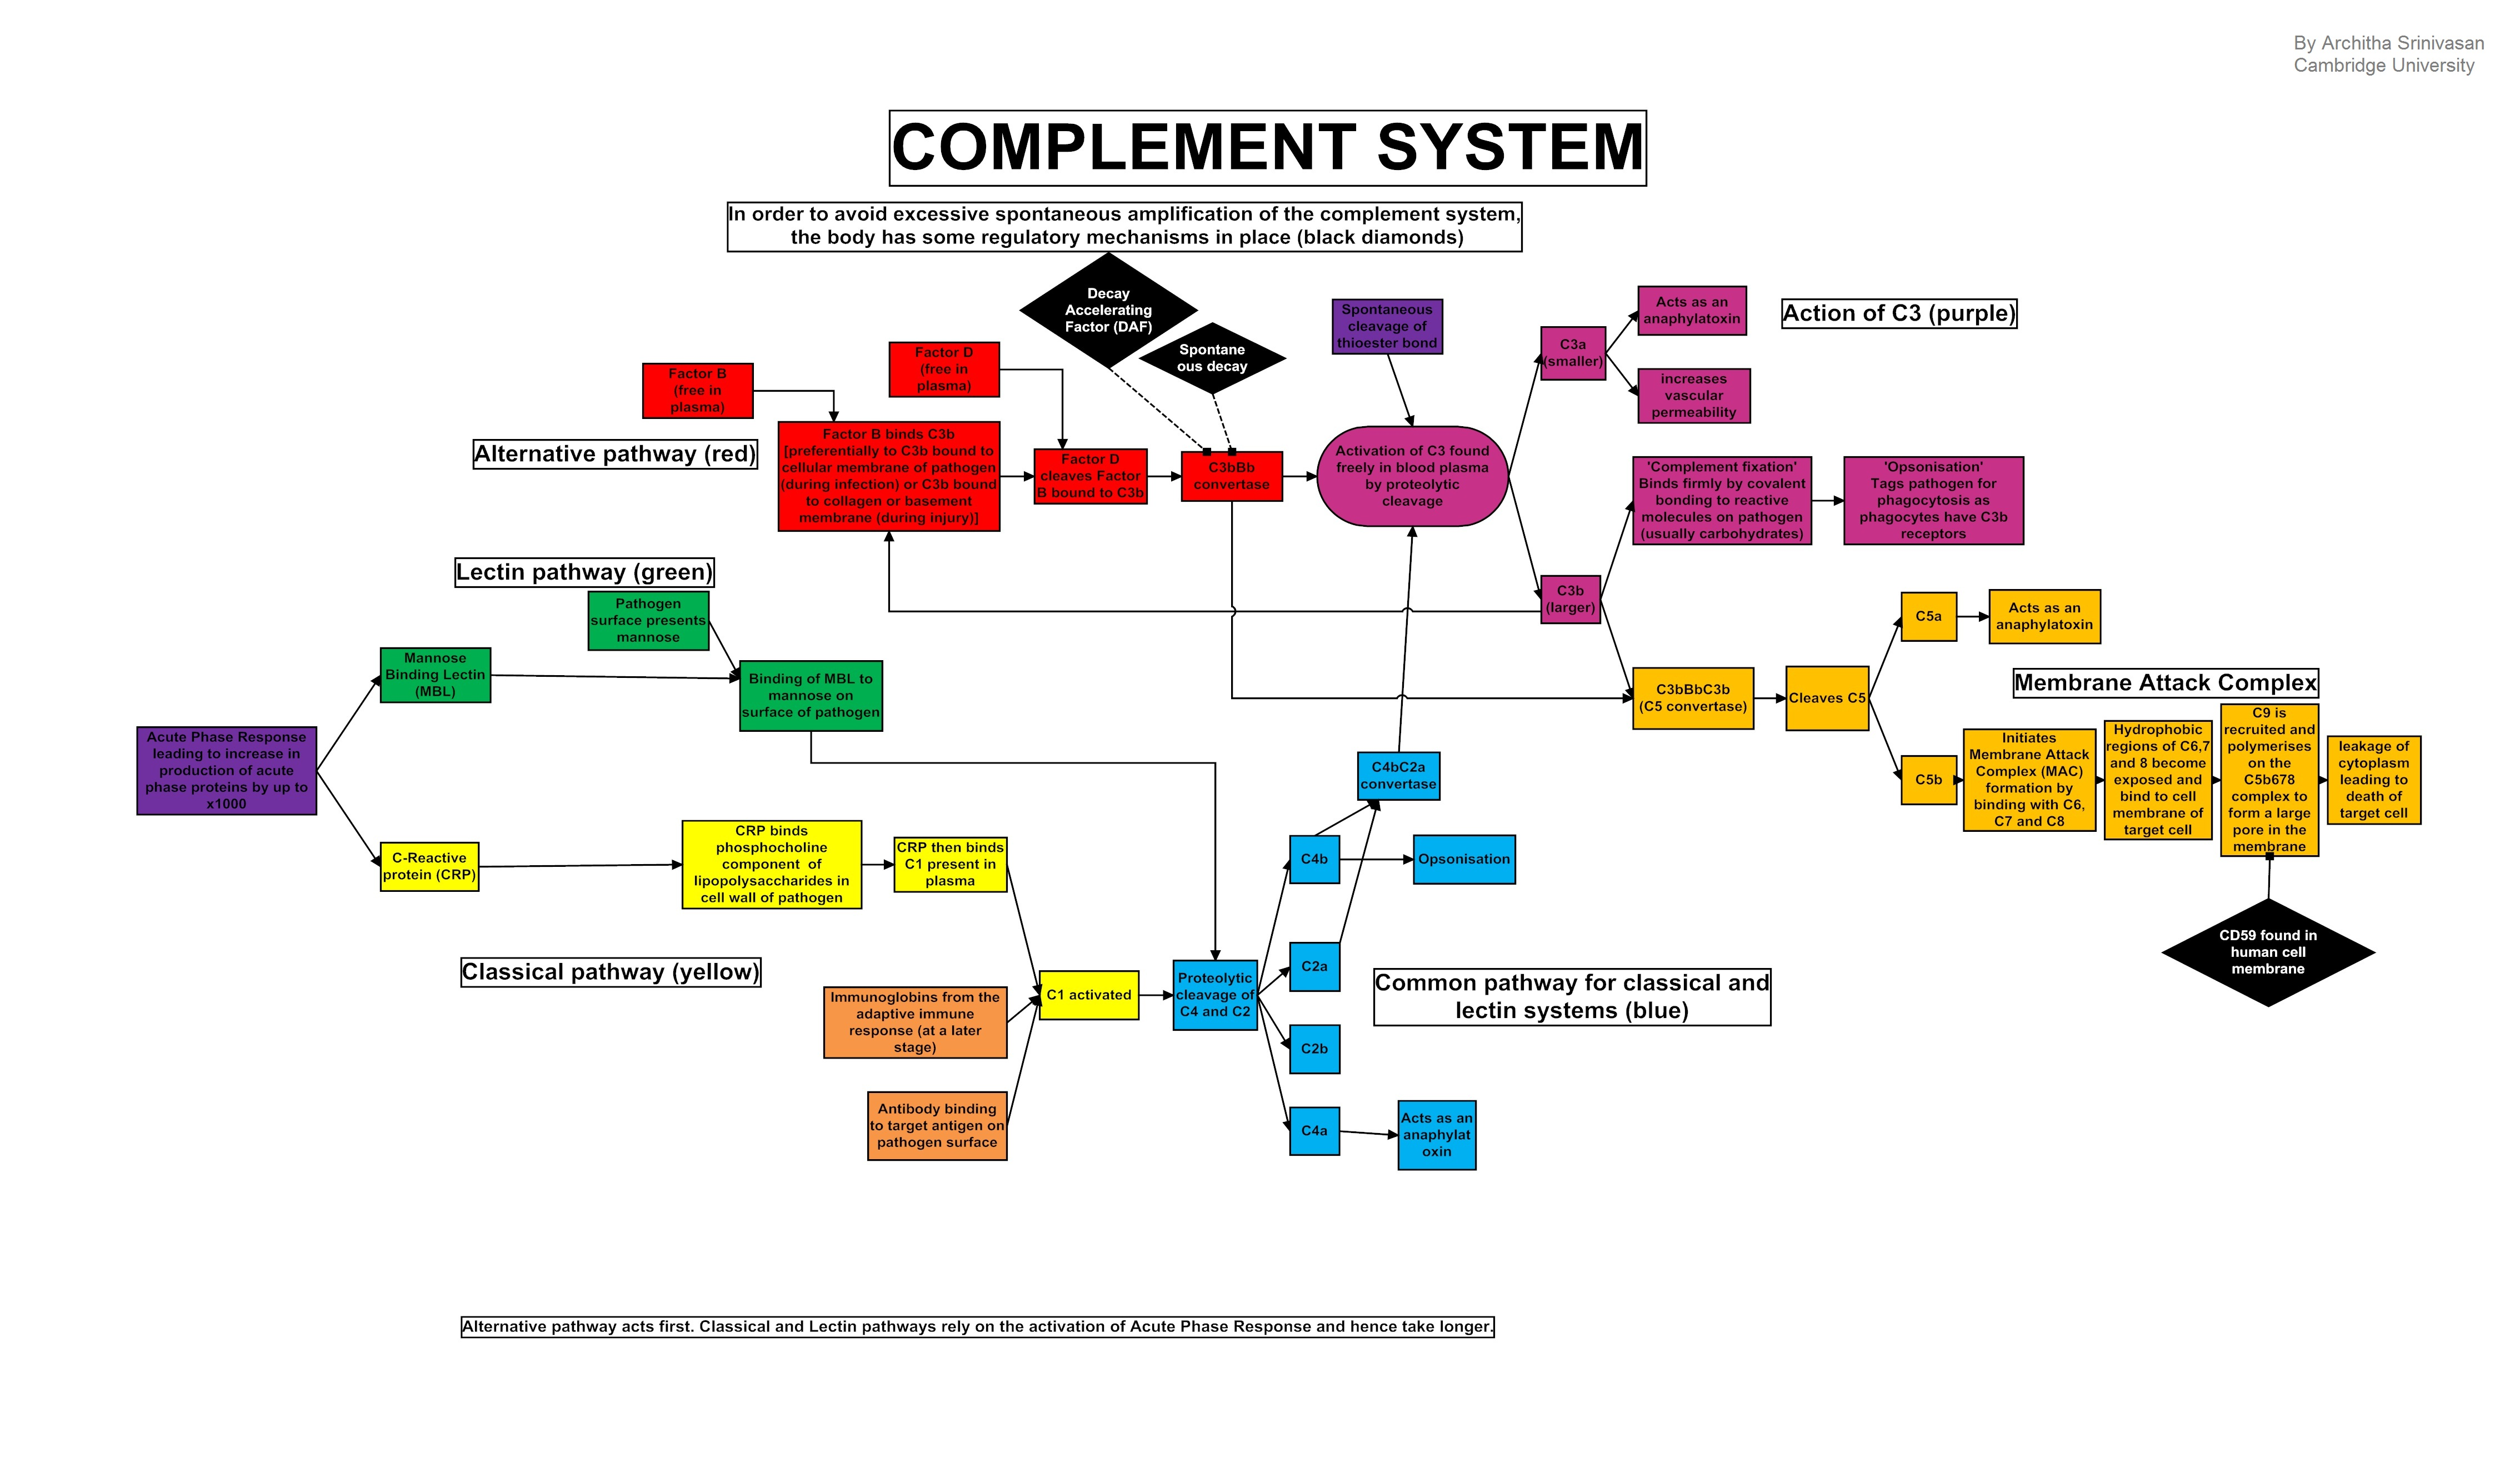 Action Flow Chart: Complement system.jpg - Wikimedia Commons,Chart